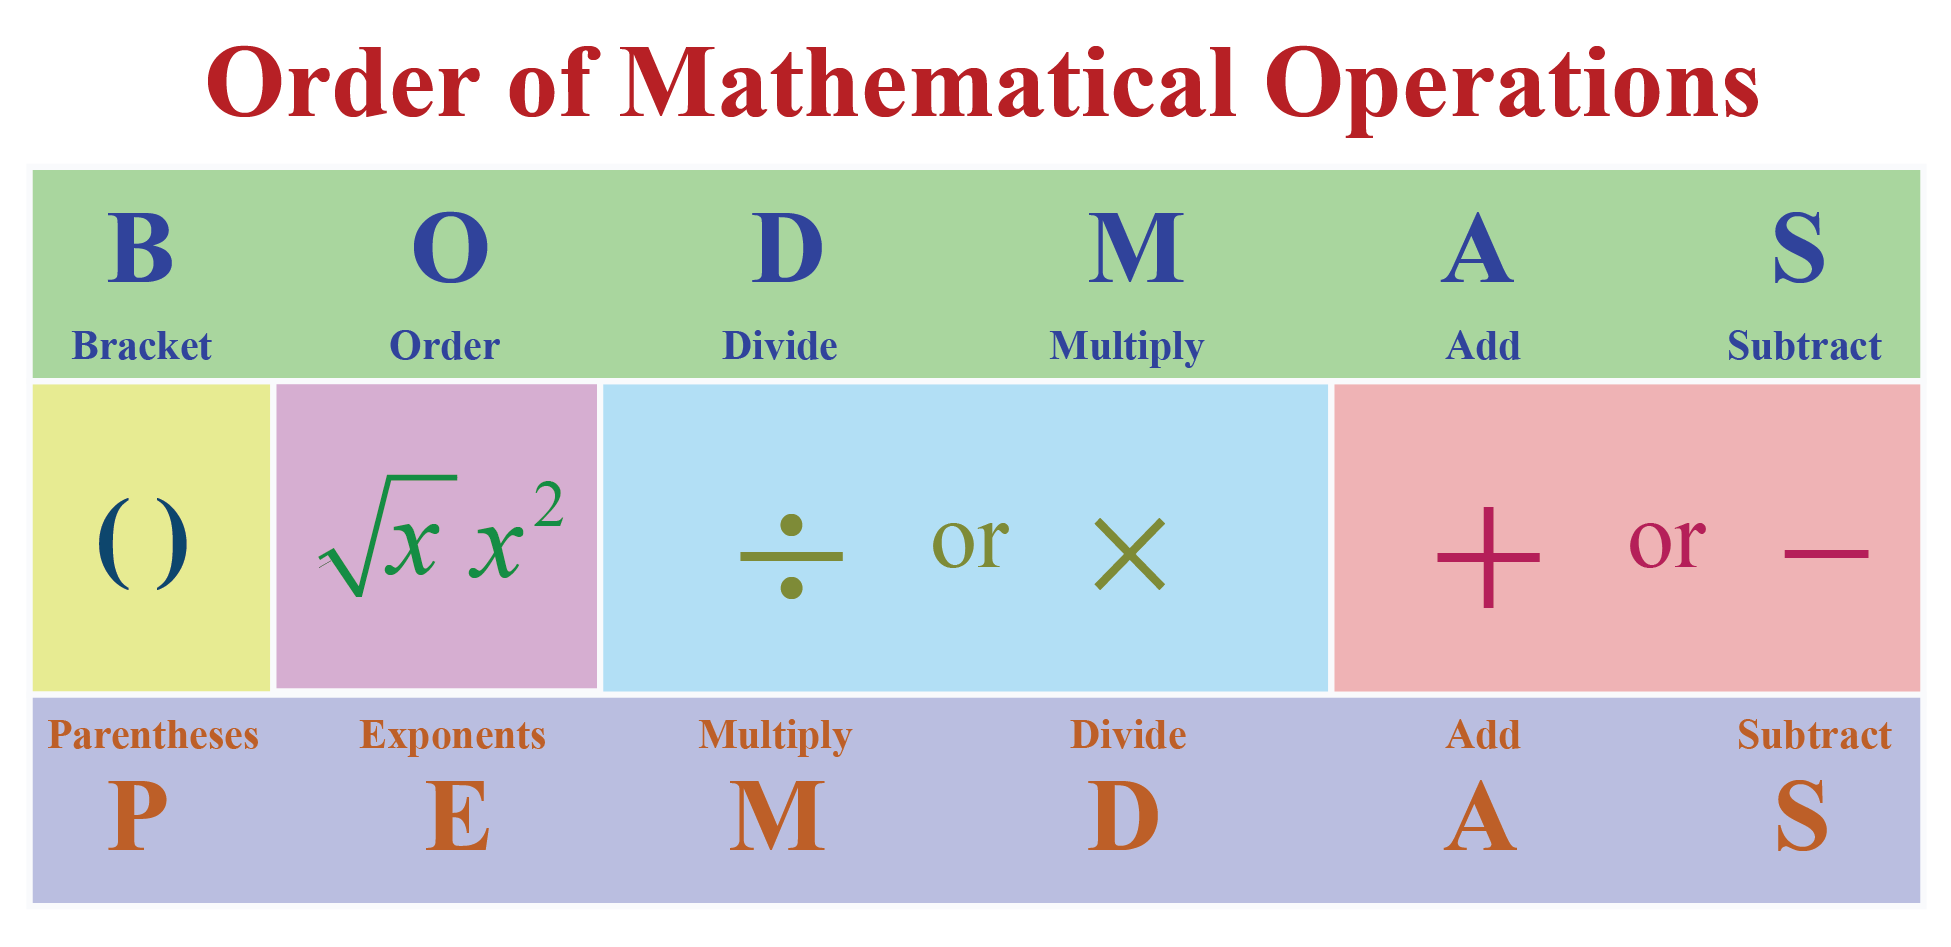 BODMAS and PEMDAS are the same. The mathematical operations are explained for each.